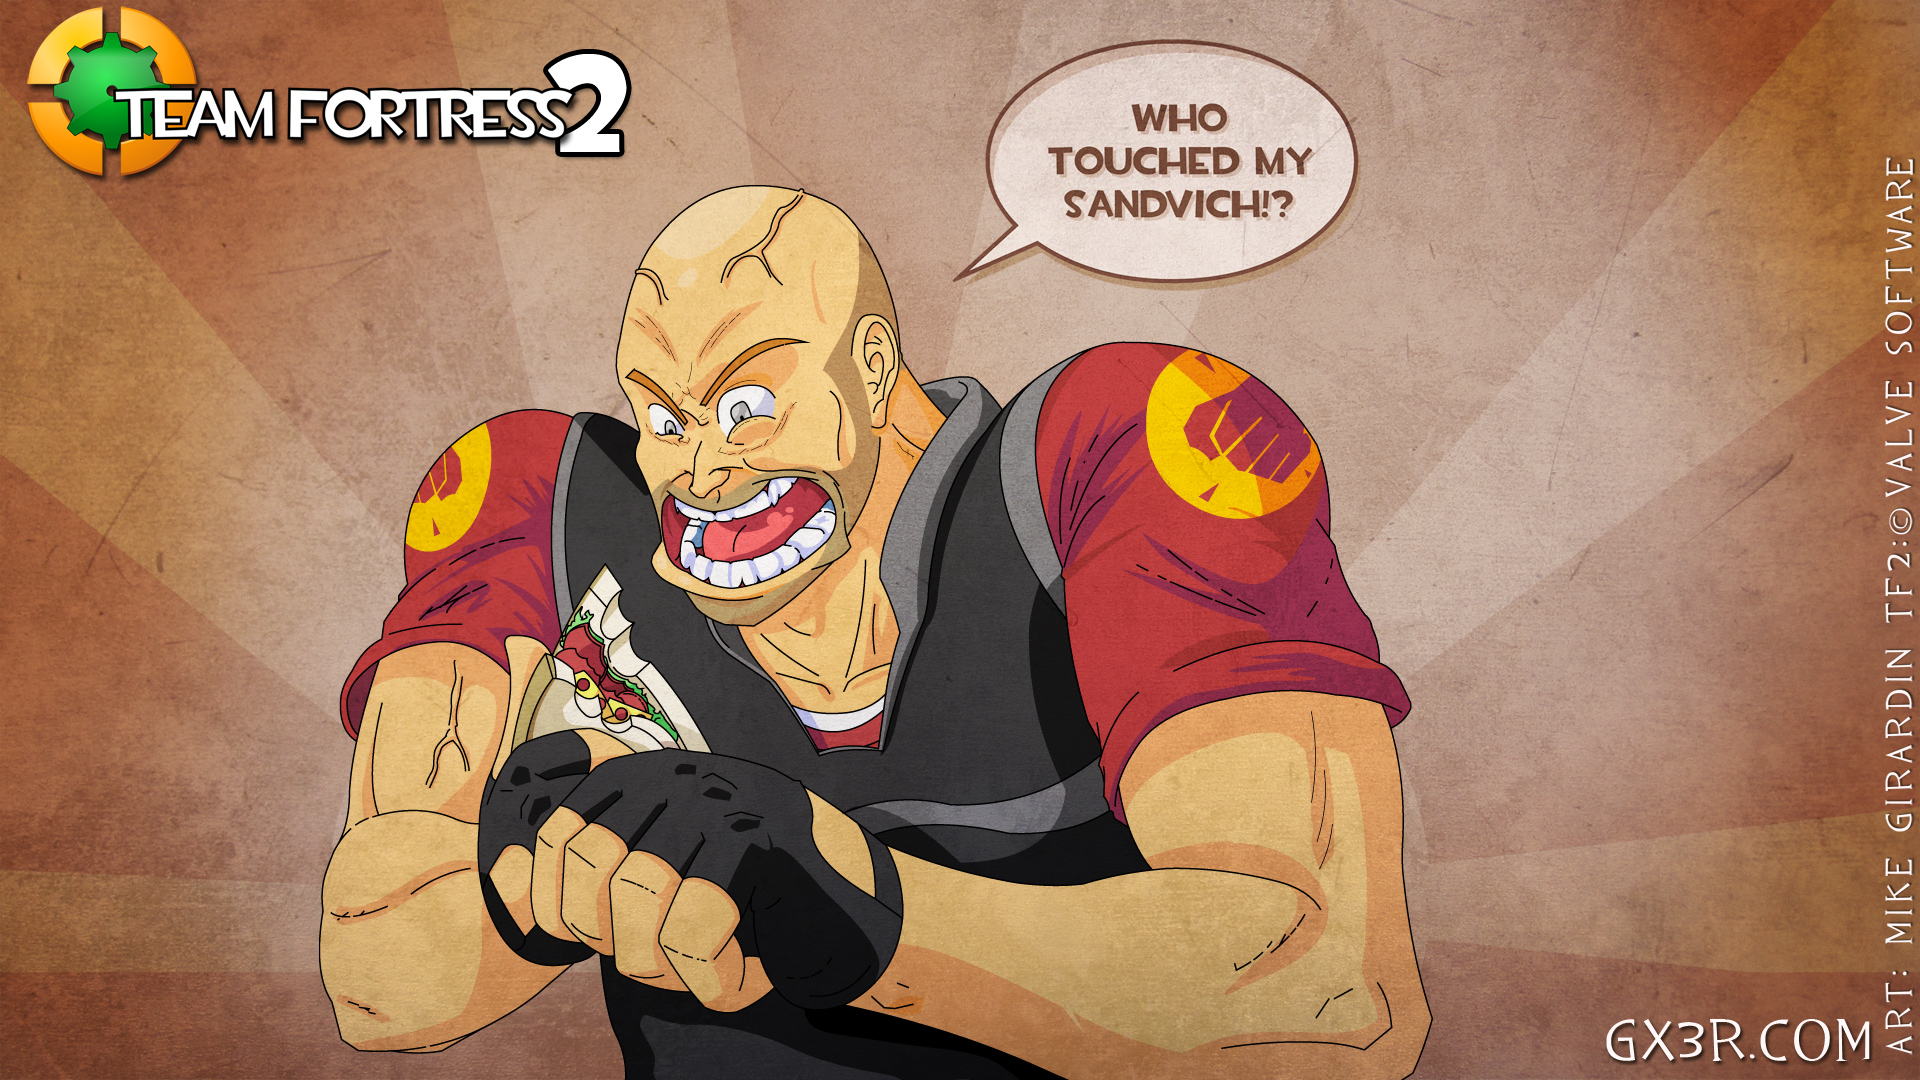 TF2 Who touched Sandvich?